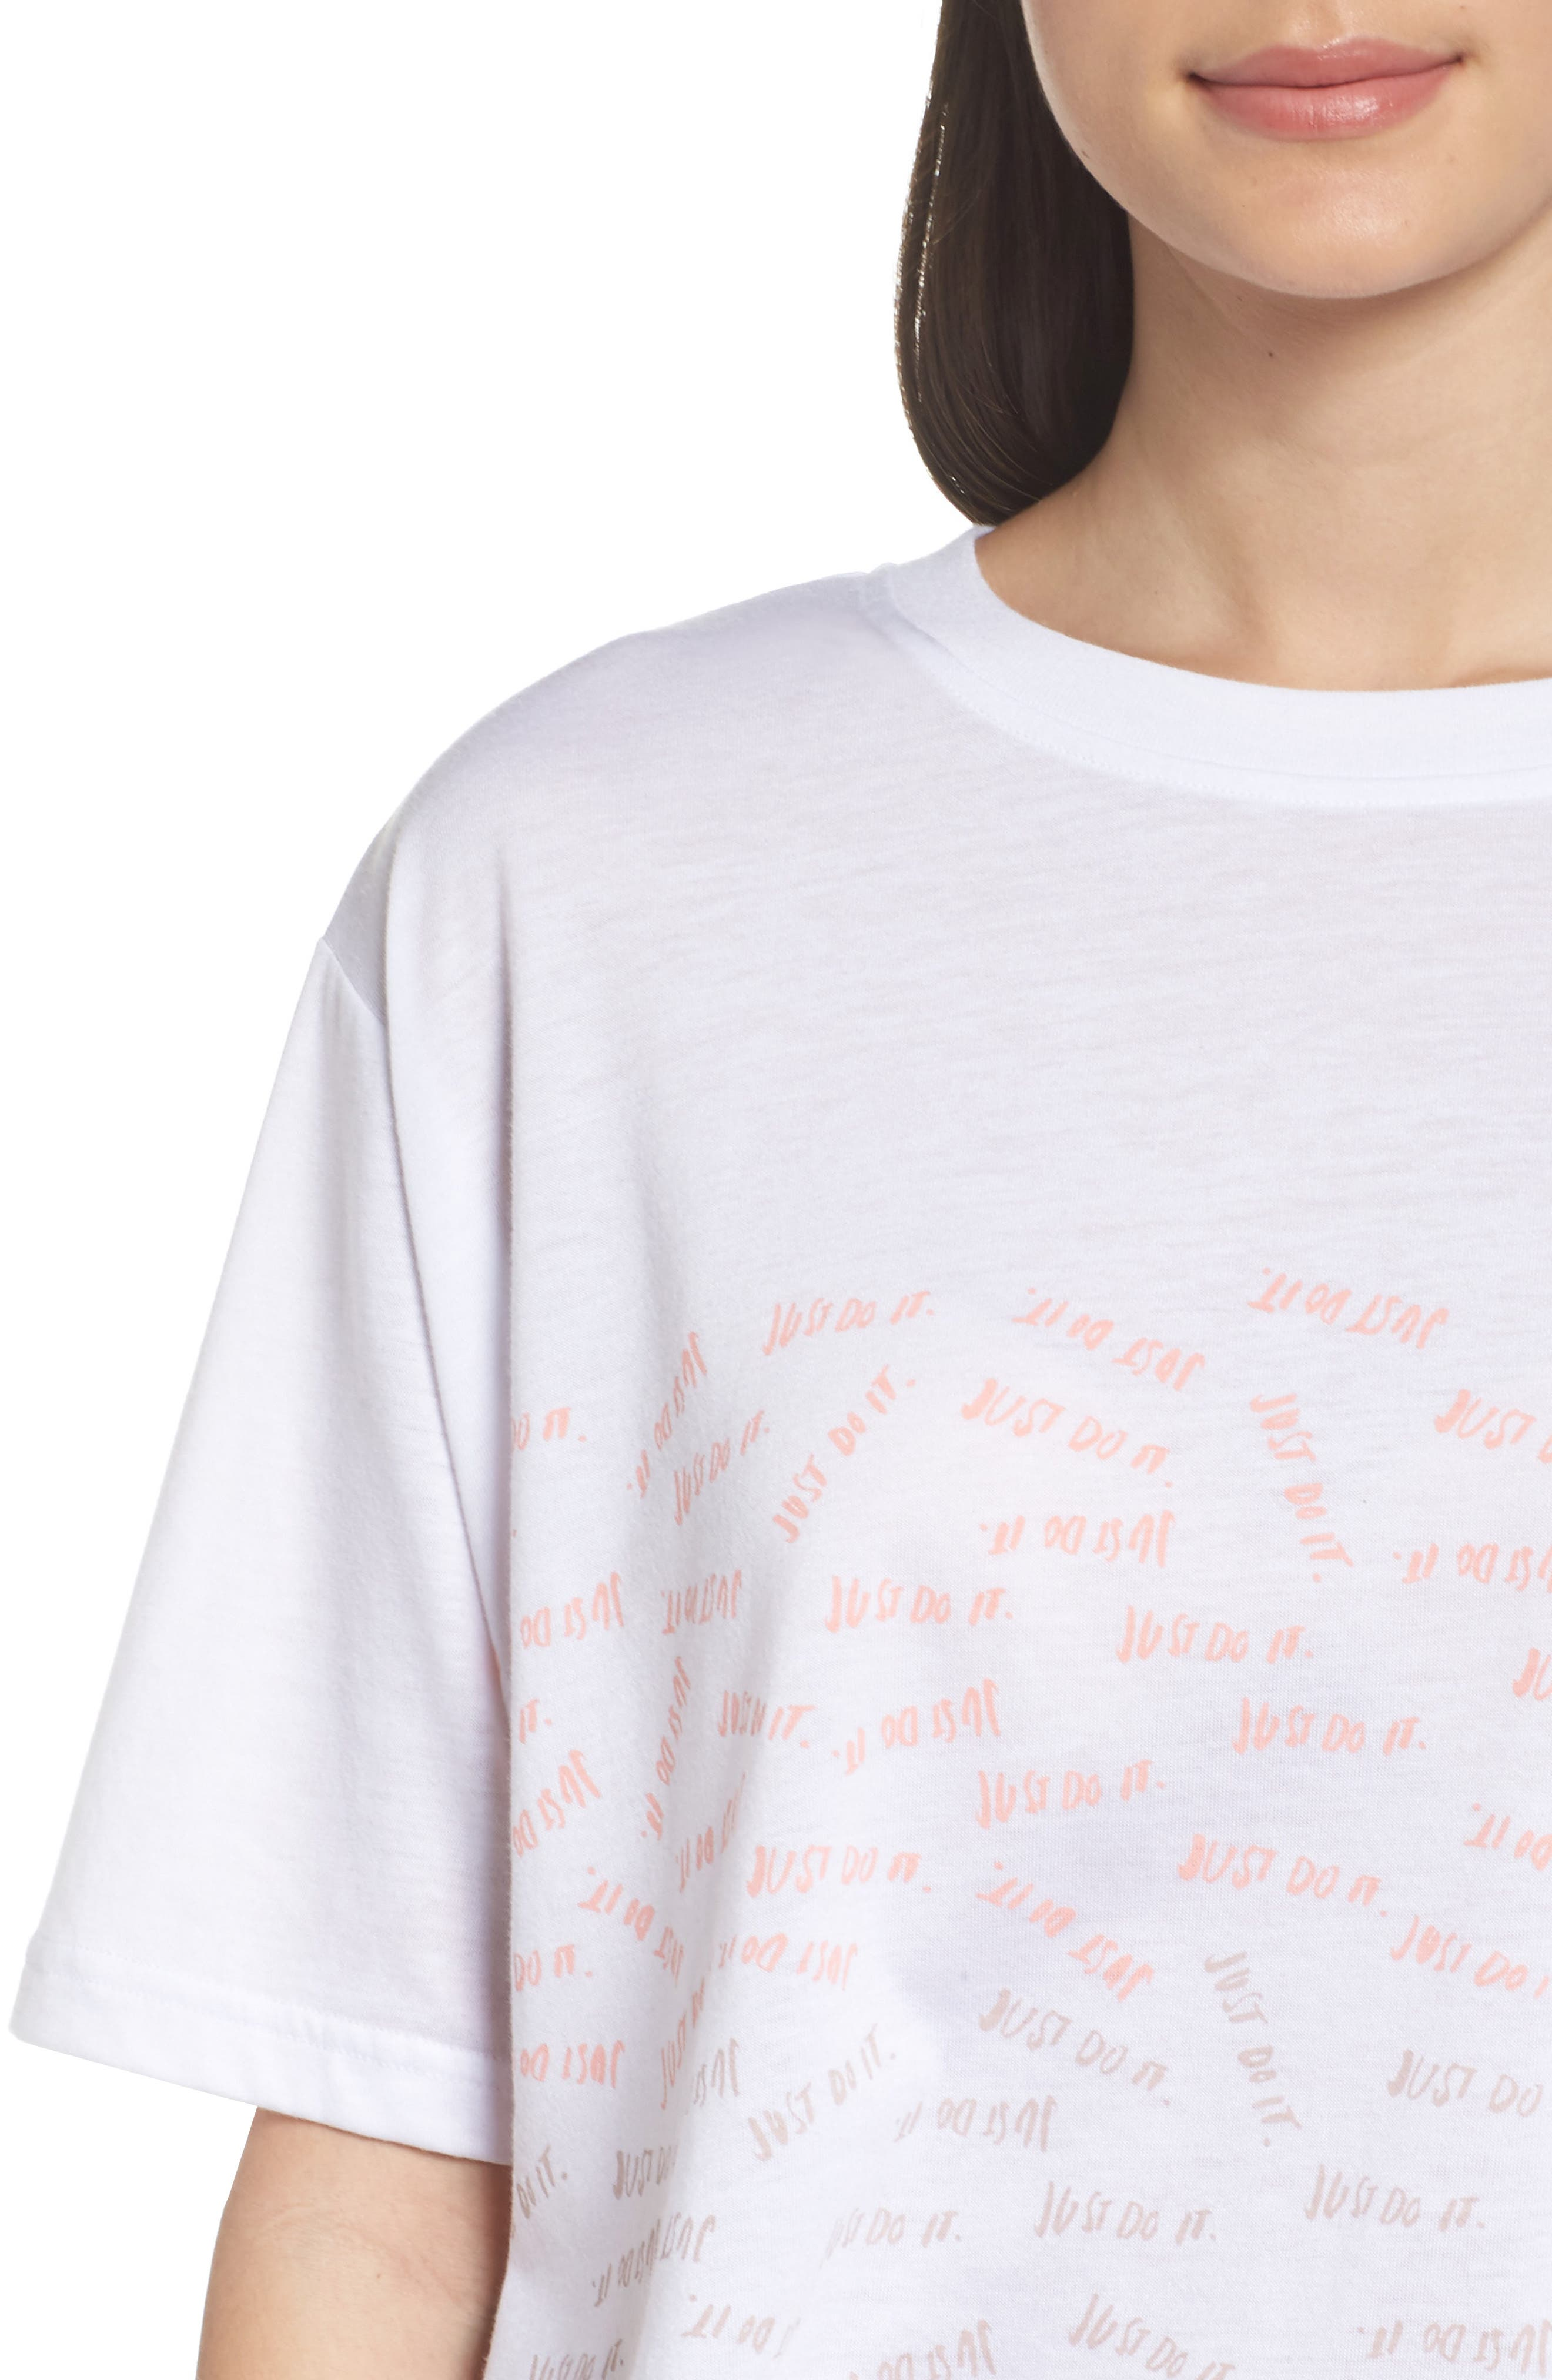 Sportswear Just Do It Tee,                             Alternate thumbnail 7, color,                             White